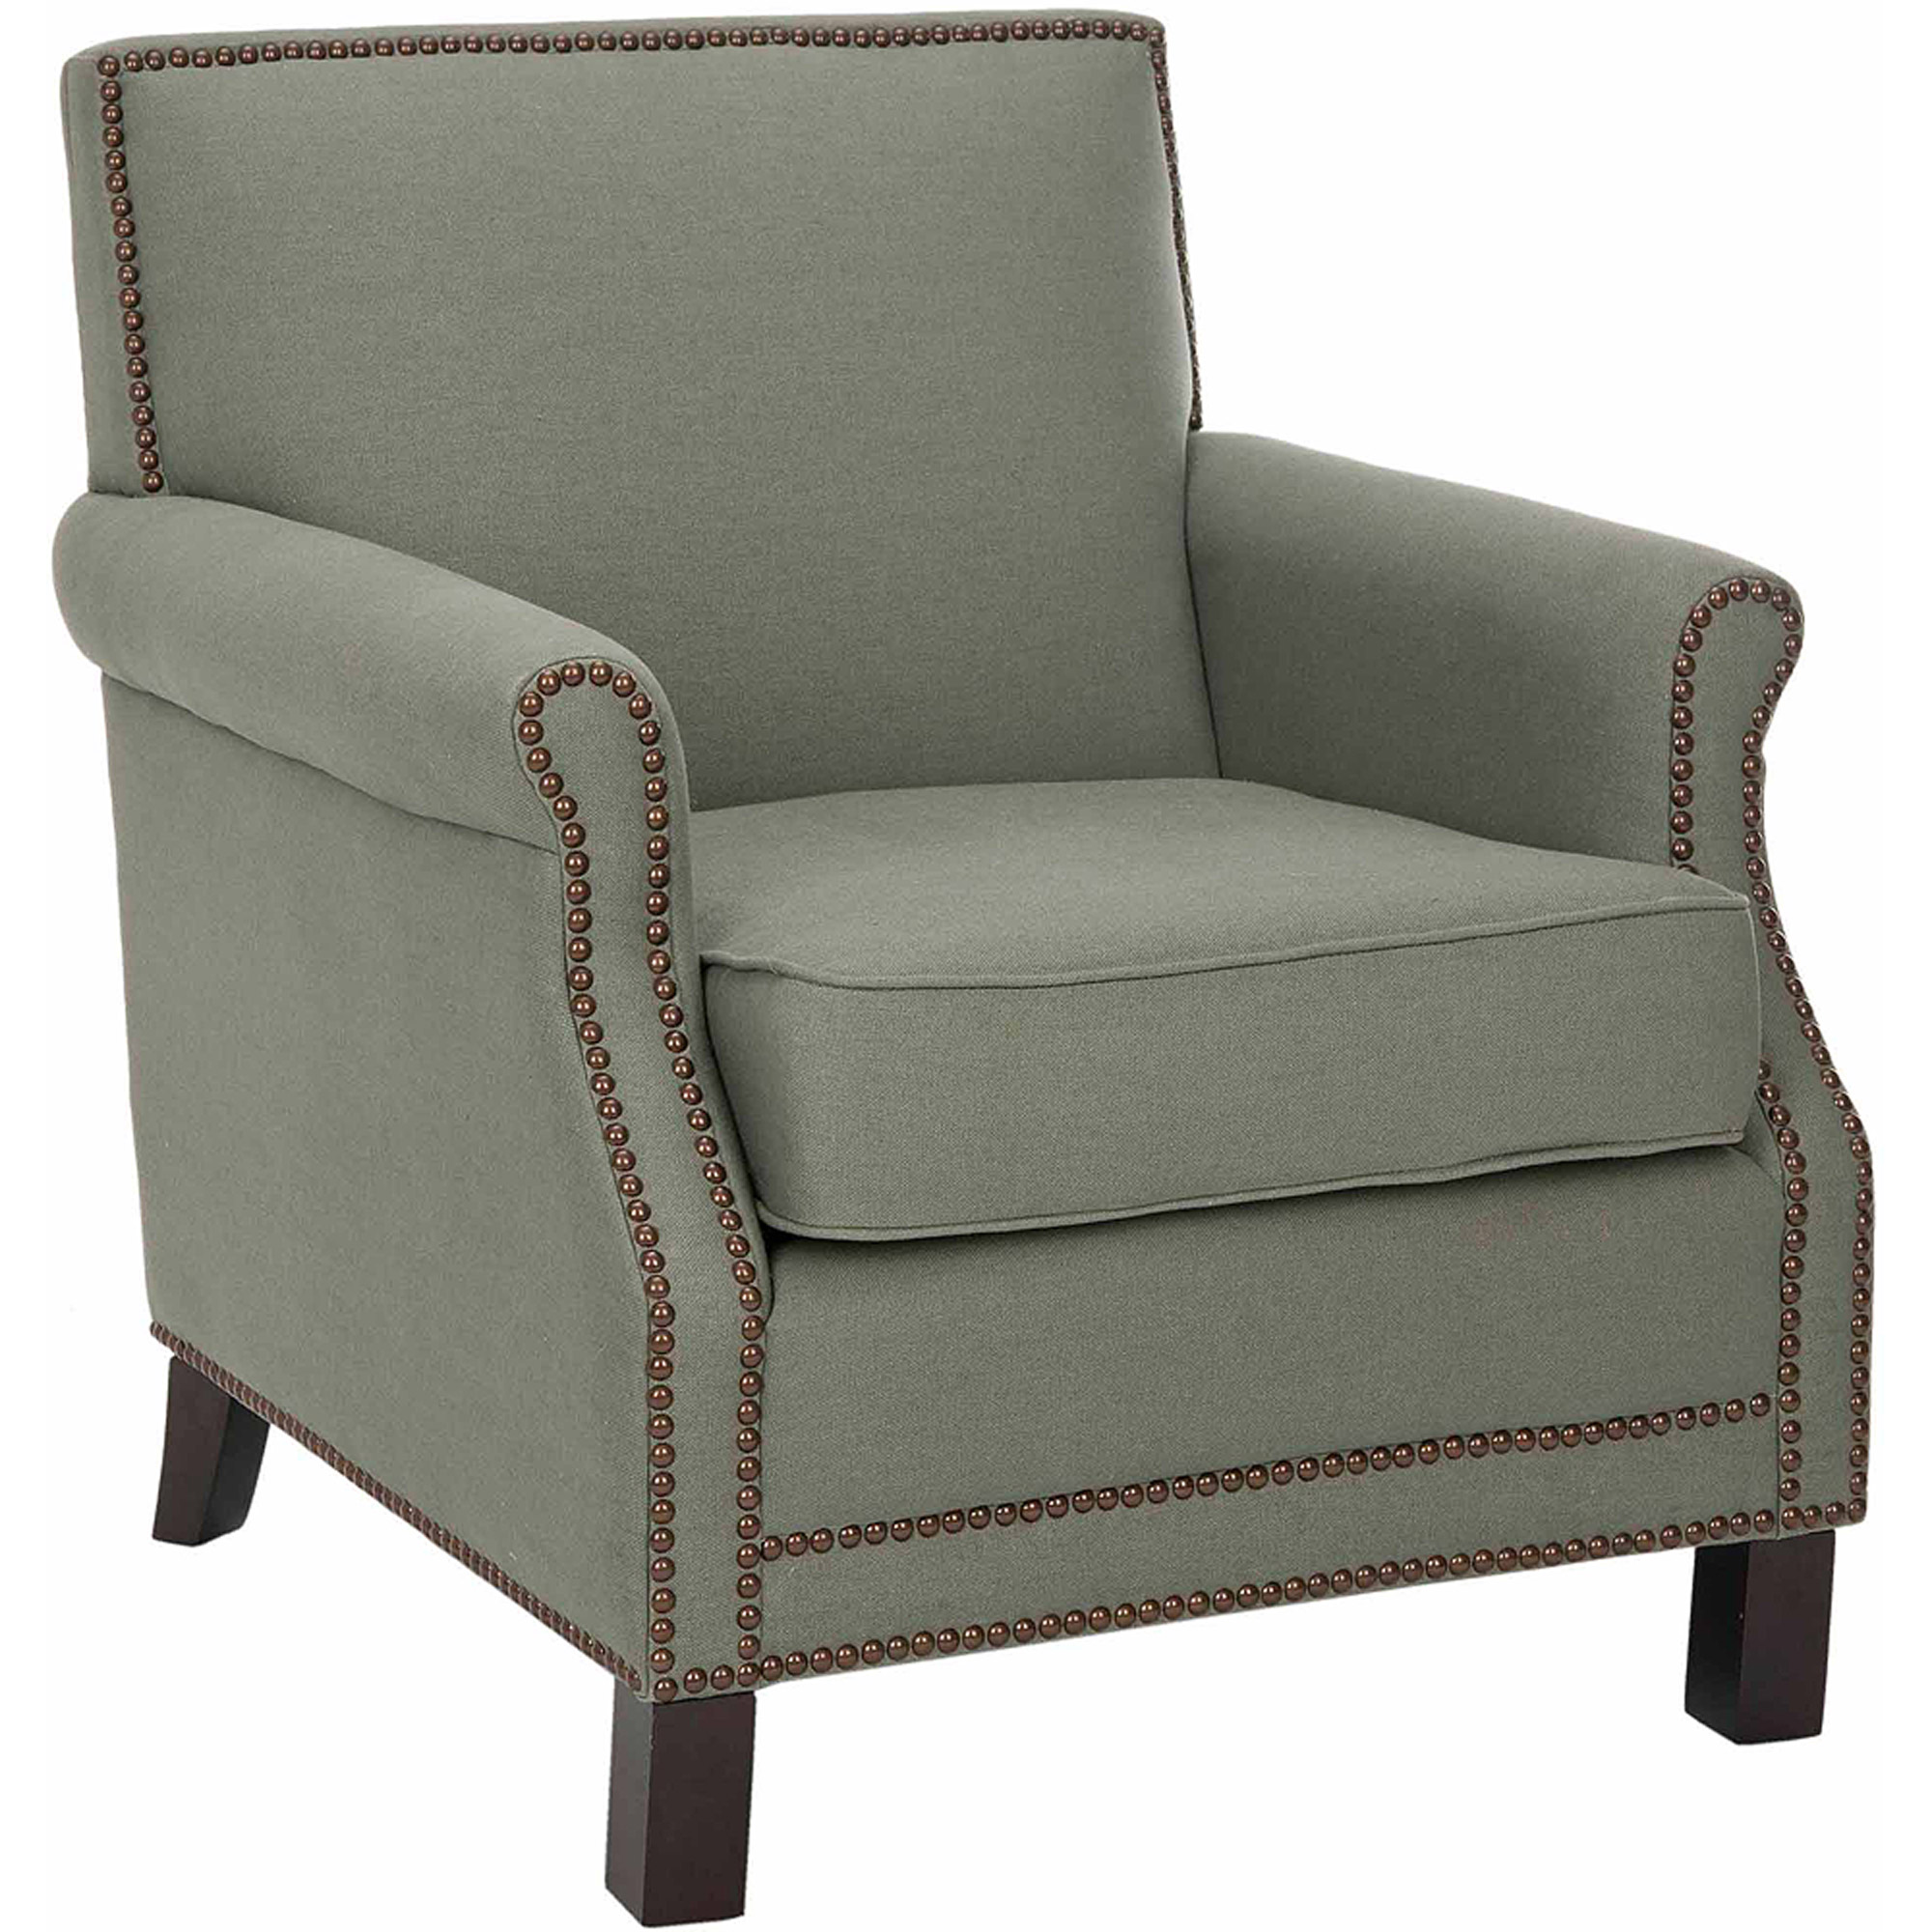 Safavieh Easton Upholstered Club Chair, Multiple Colors